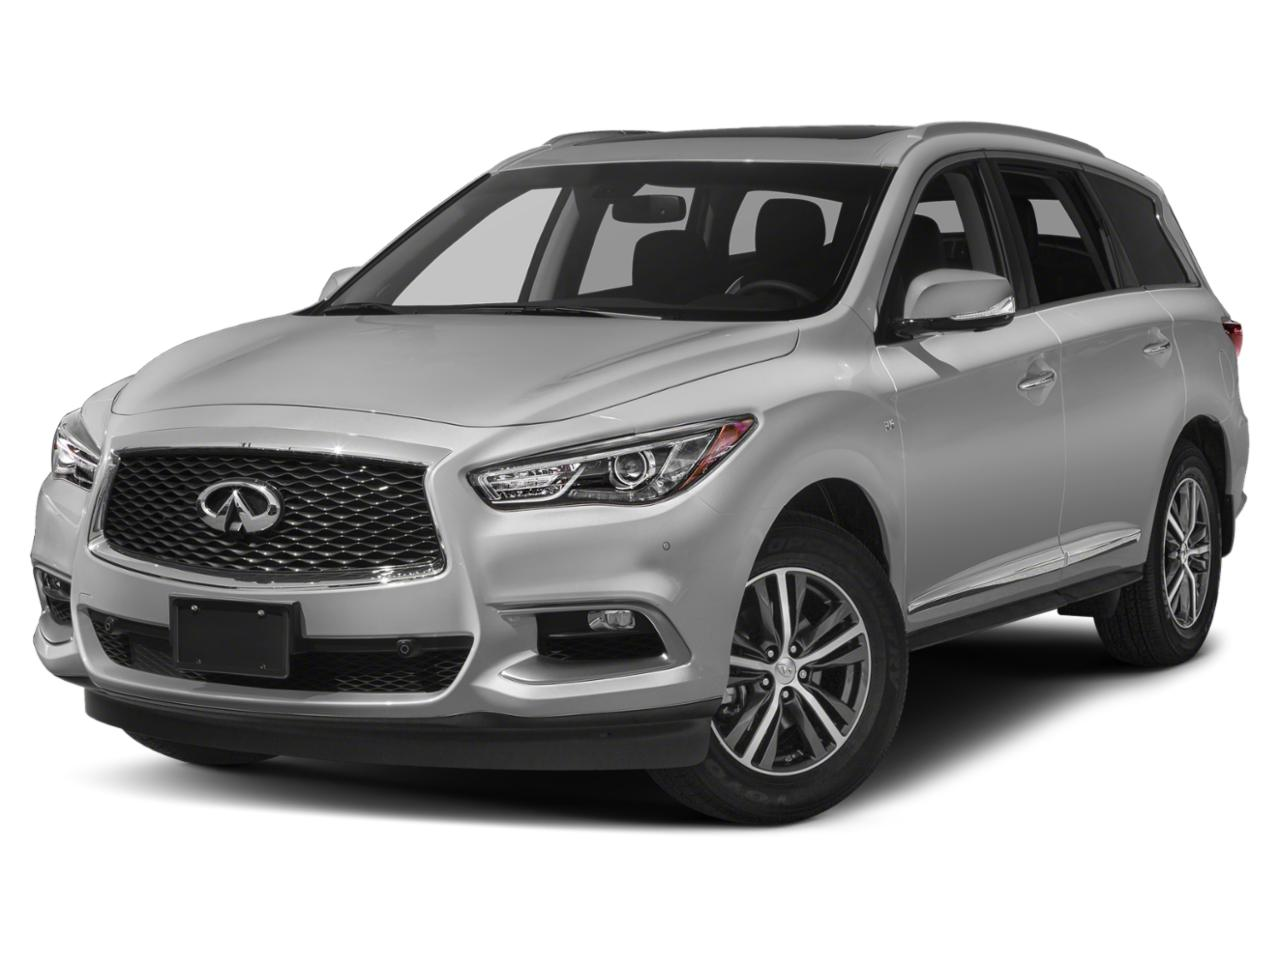 2019 INFINITI QX60 Vehicle Photo in Gulfport, MS 39503